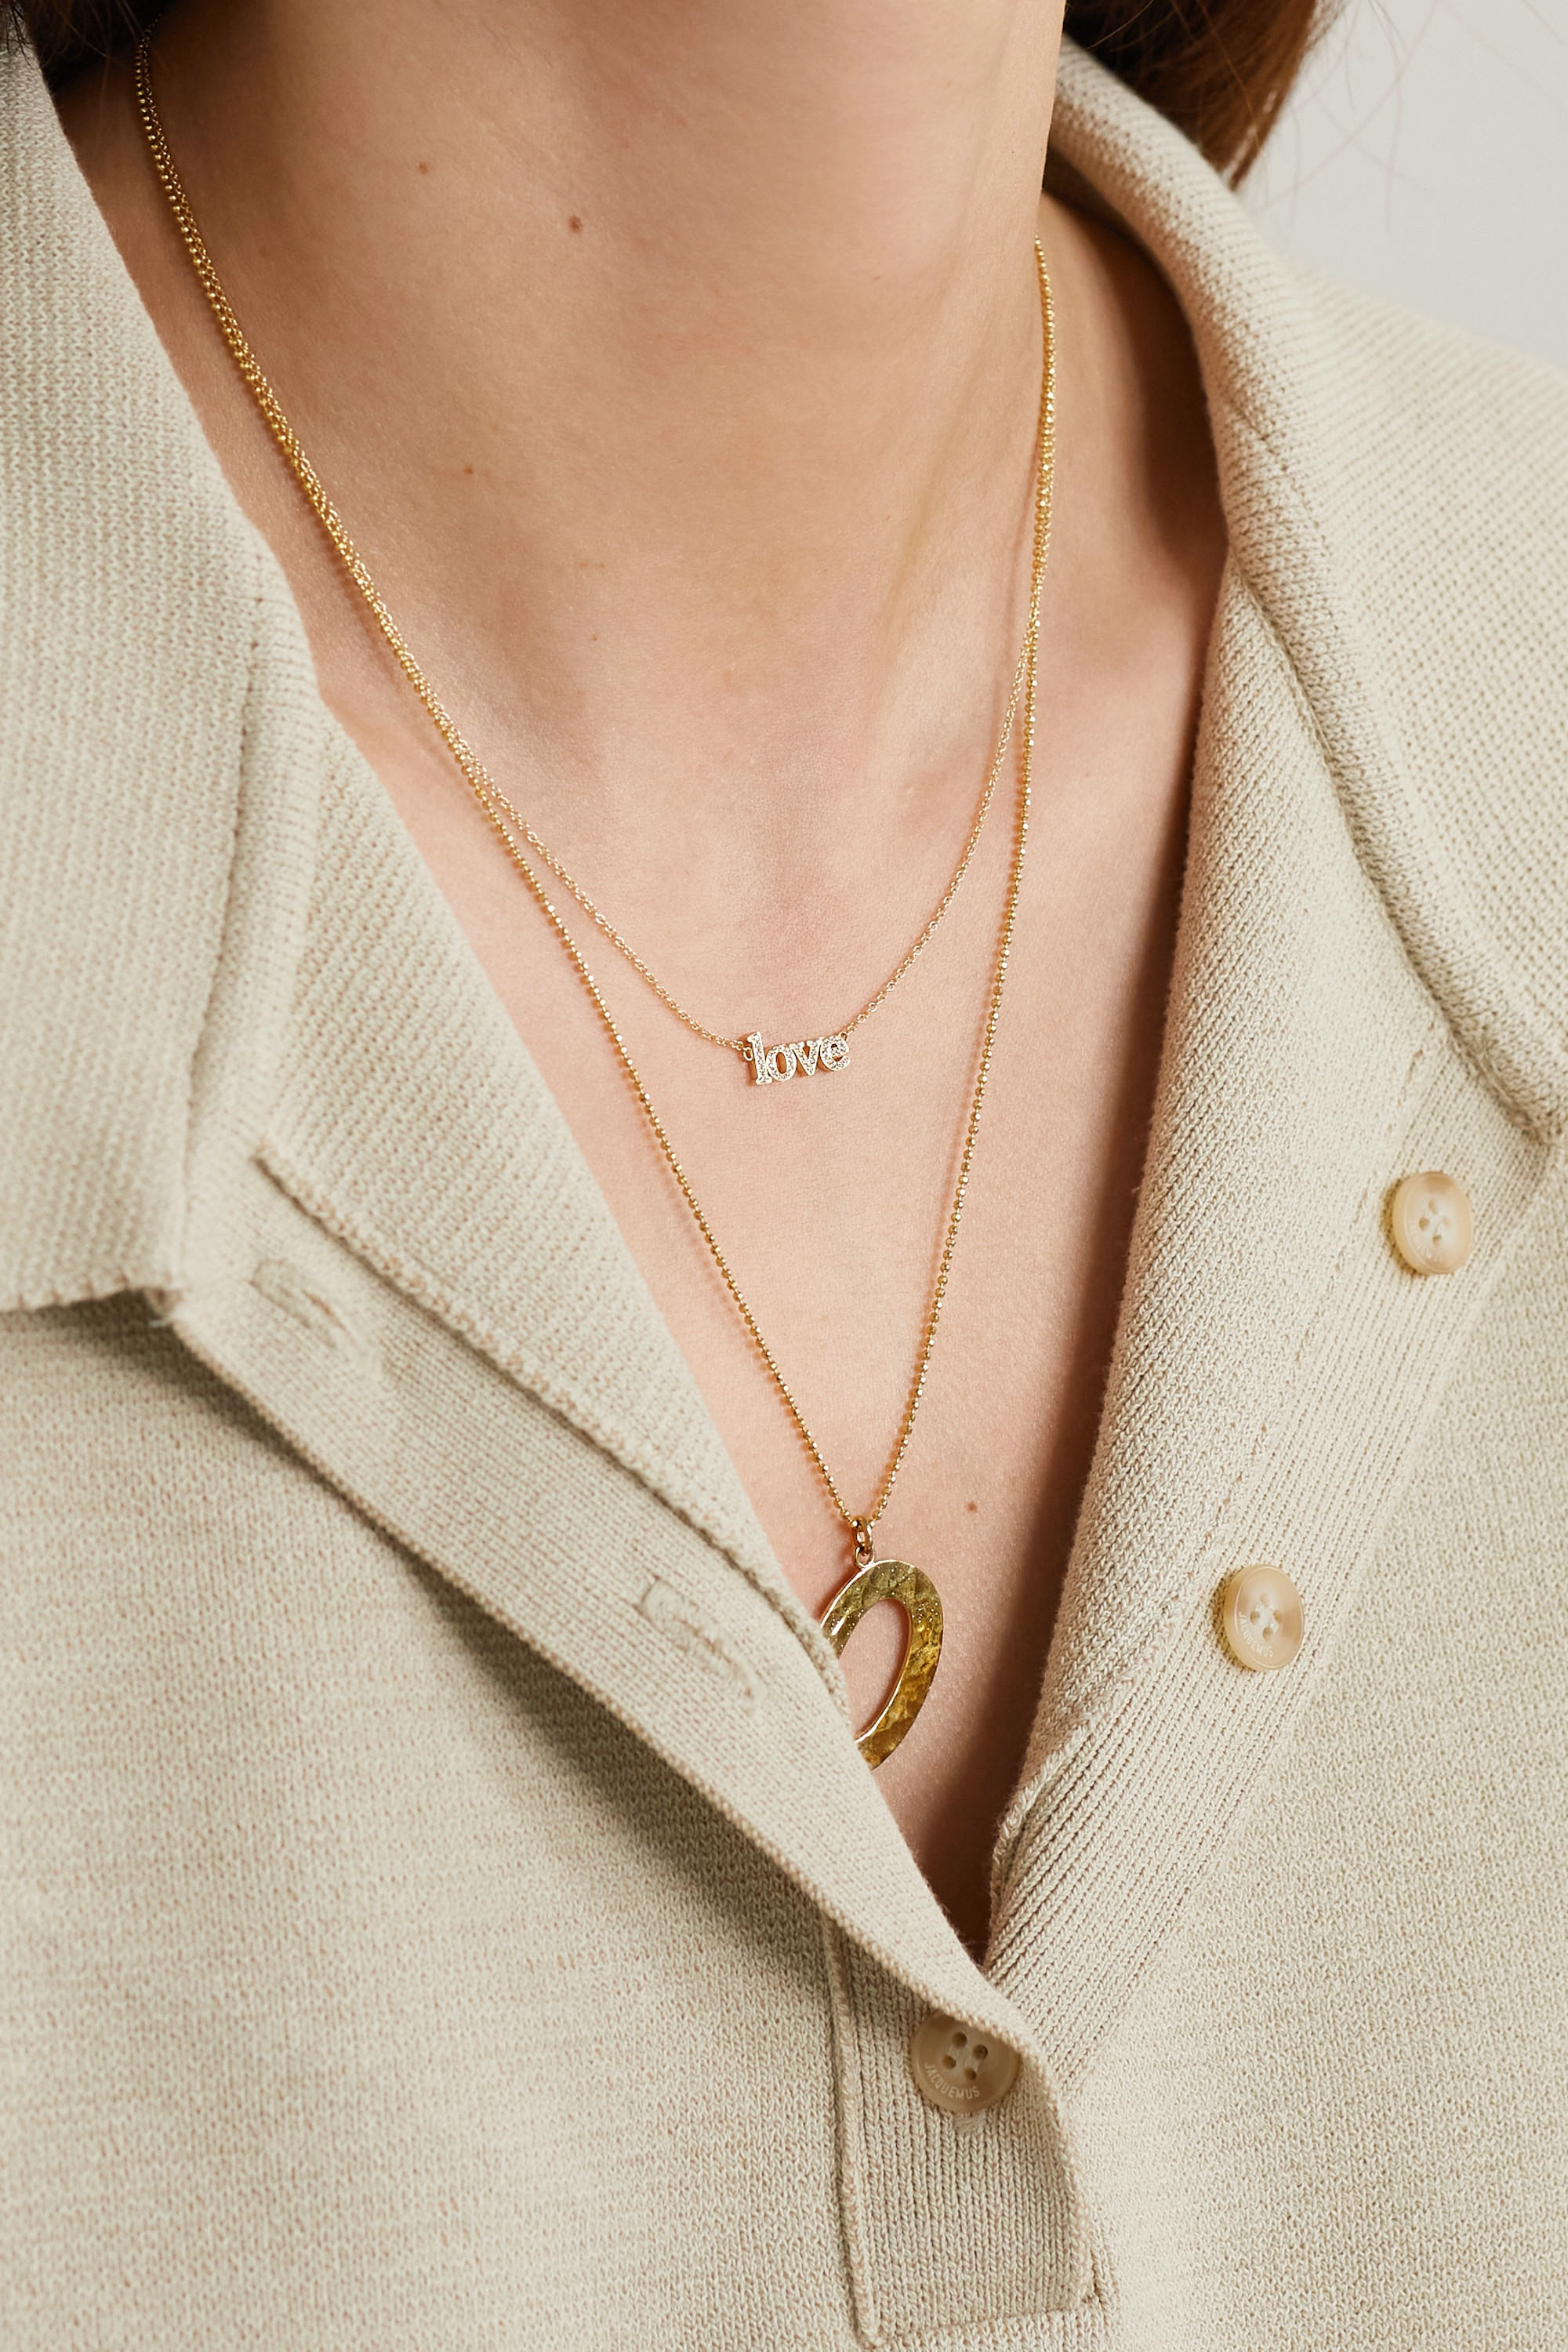 JENNIFER MEYER Love 18-karat gold diamond necklace